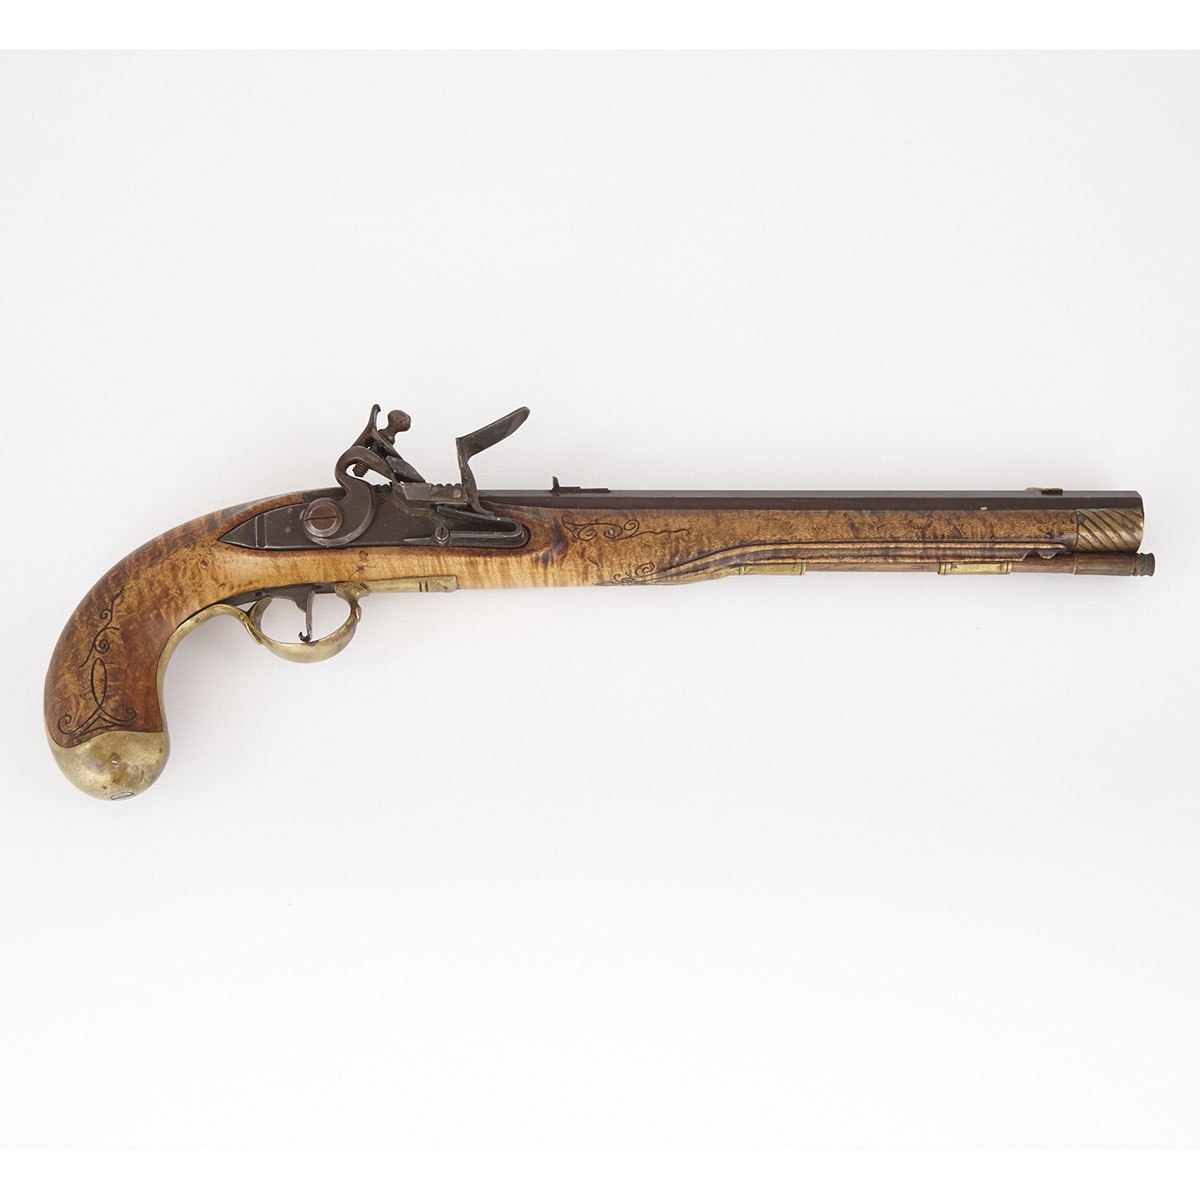 18th century Style Continental Flintlock Pistol, 20th century